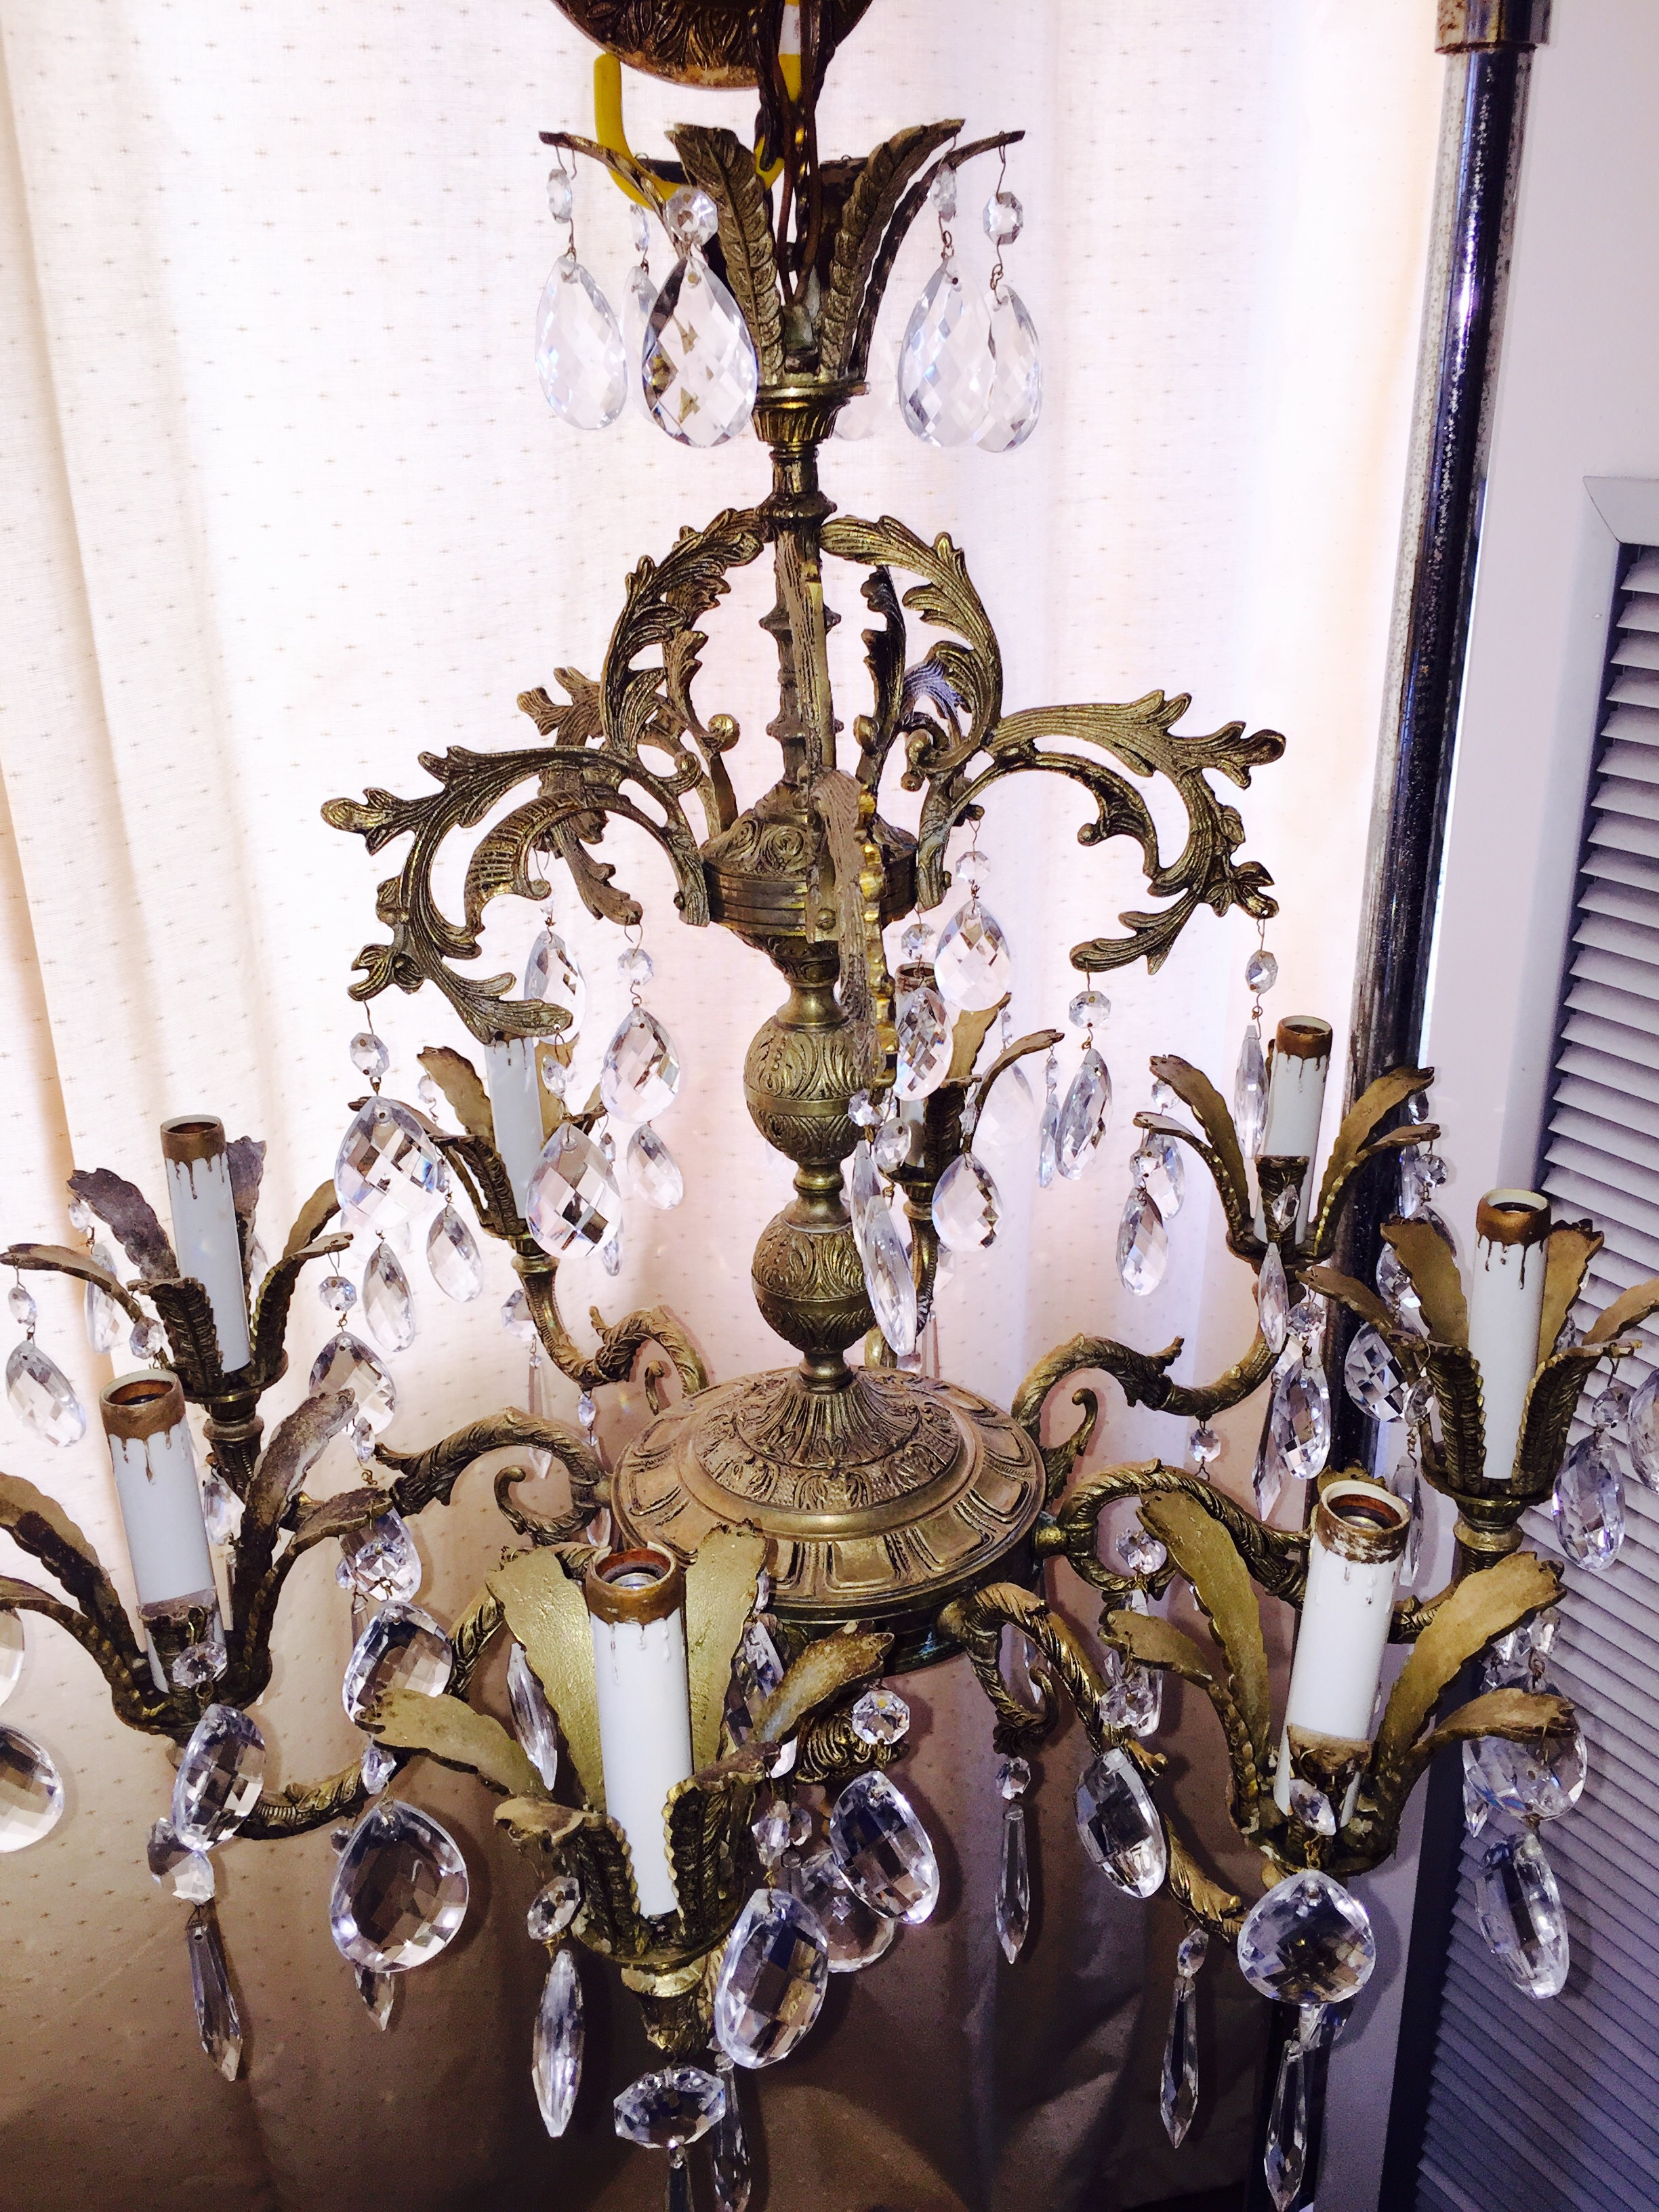 I D My 8 Arm Solid Brass Chandelier Beautiful Large Arms For In Excellent Working Condition With 80 Crystals Clean And